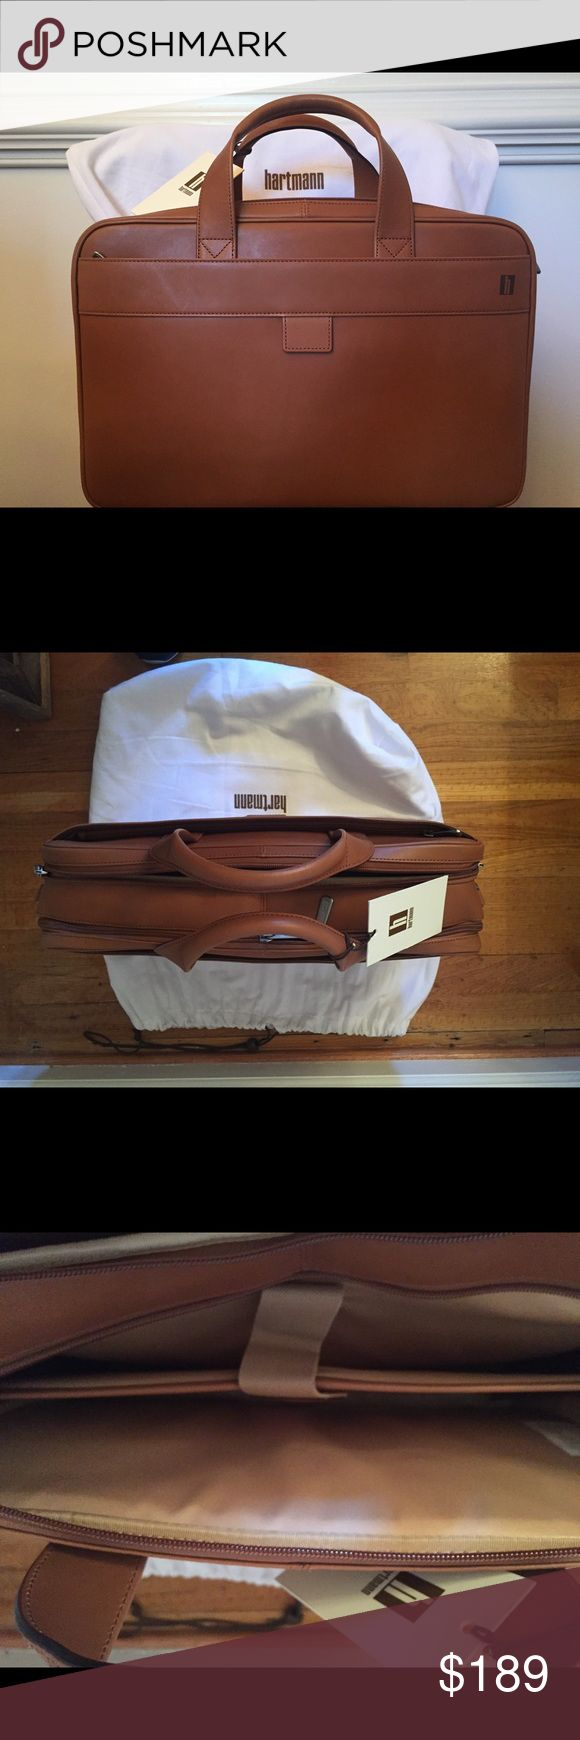 Hartmann Heritage Belting Leather Briefcase Beautiful full grain brown Hartmann belting leather double compartment brief case.  Leather handles and and adjustable shoulder strap.  Zippered companion strap slides into rolling suitcase handle for easy transport.  Padded computer area.  16.25x12.5x4.5 inches.  Bought for my husband but he never used it.  Retail price 425.00 Hartmann Bags Laptop Bags